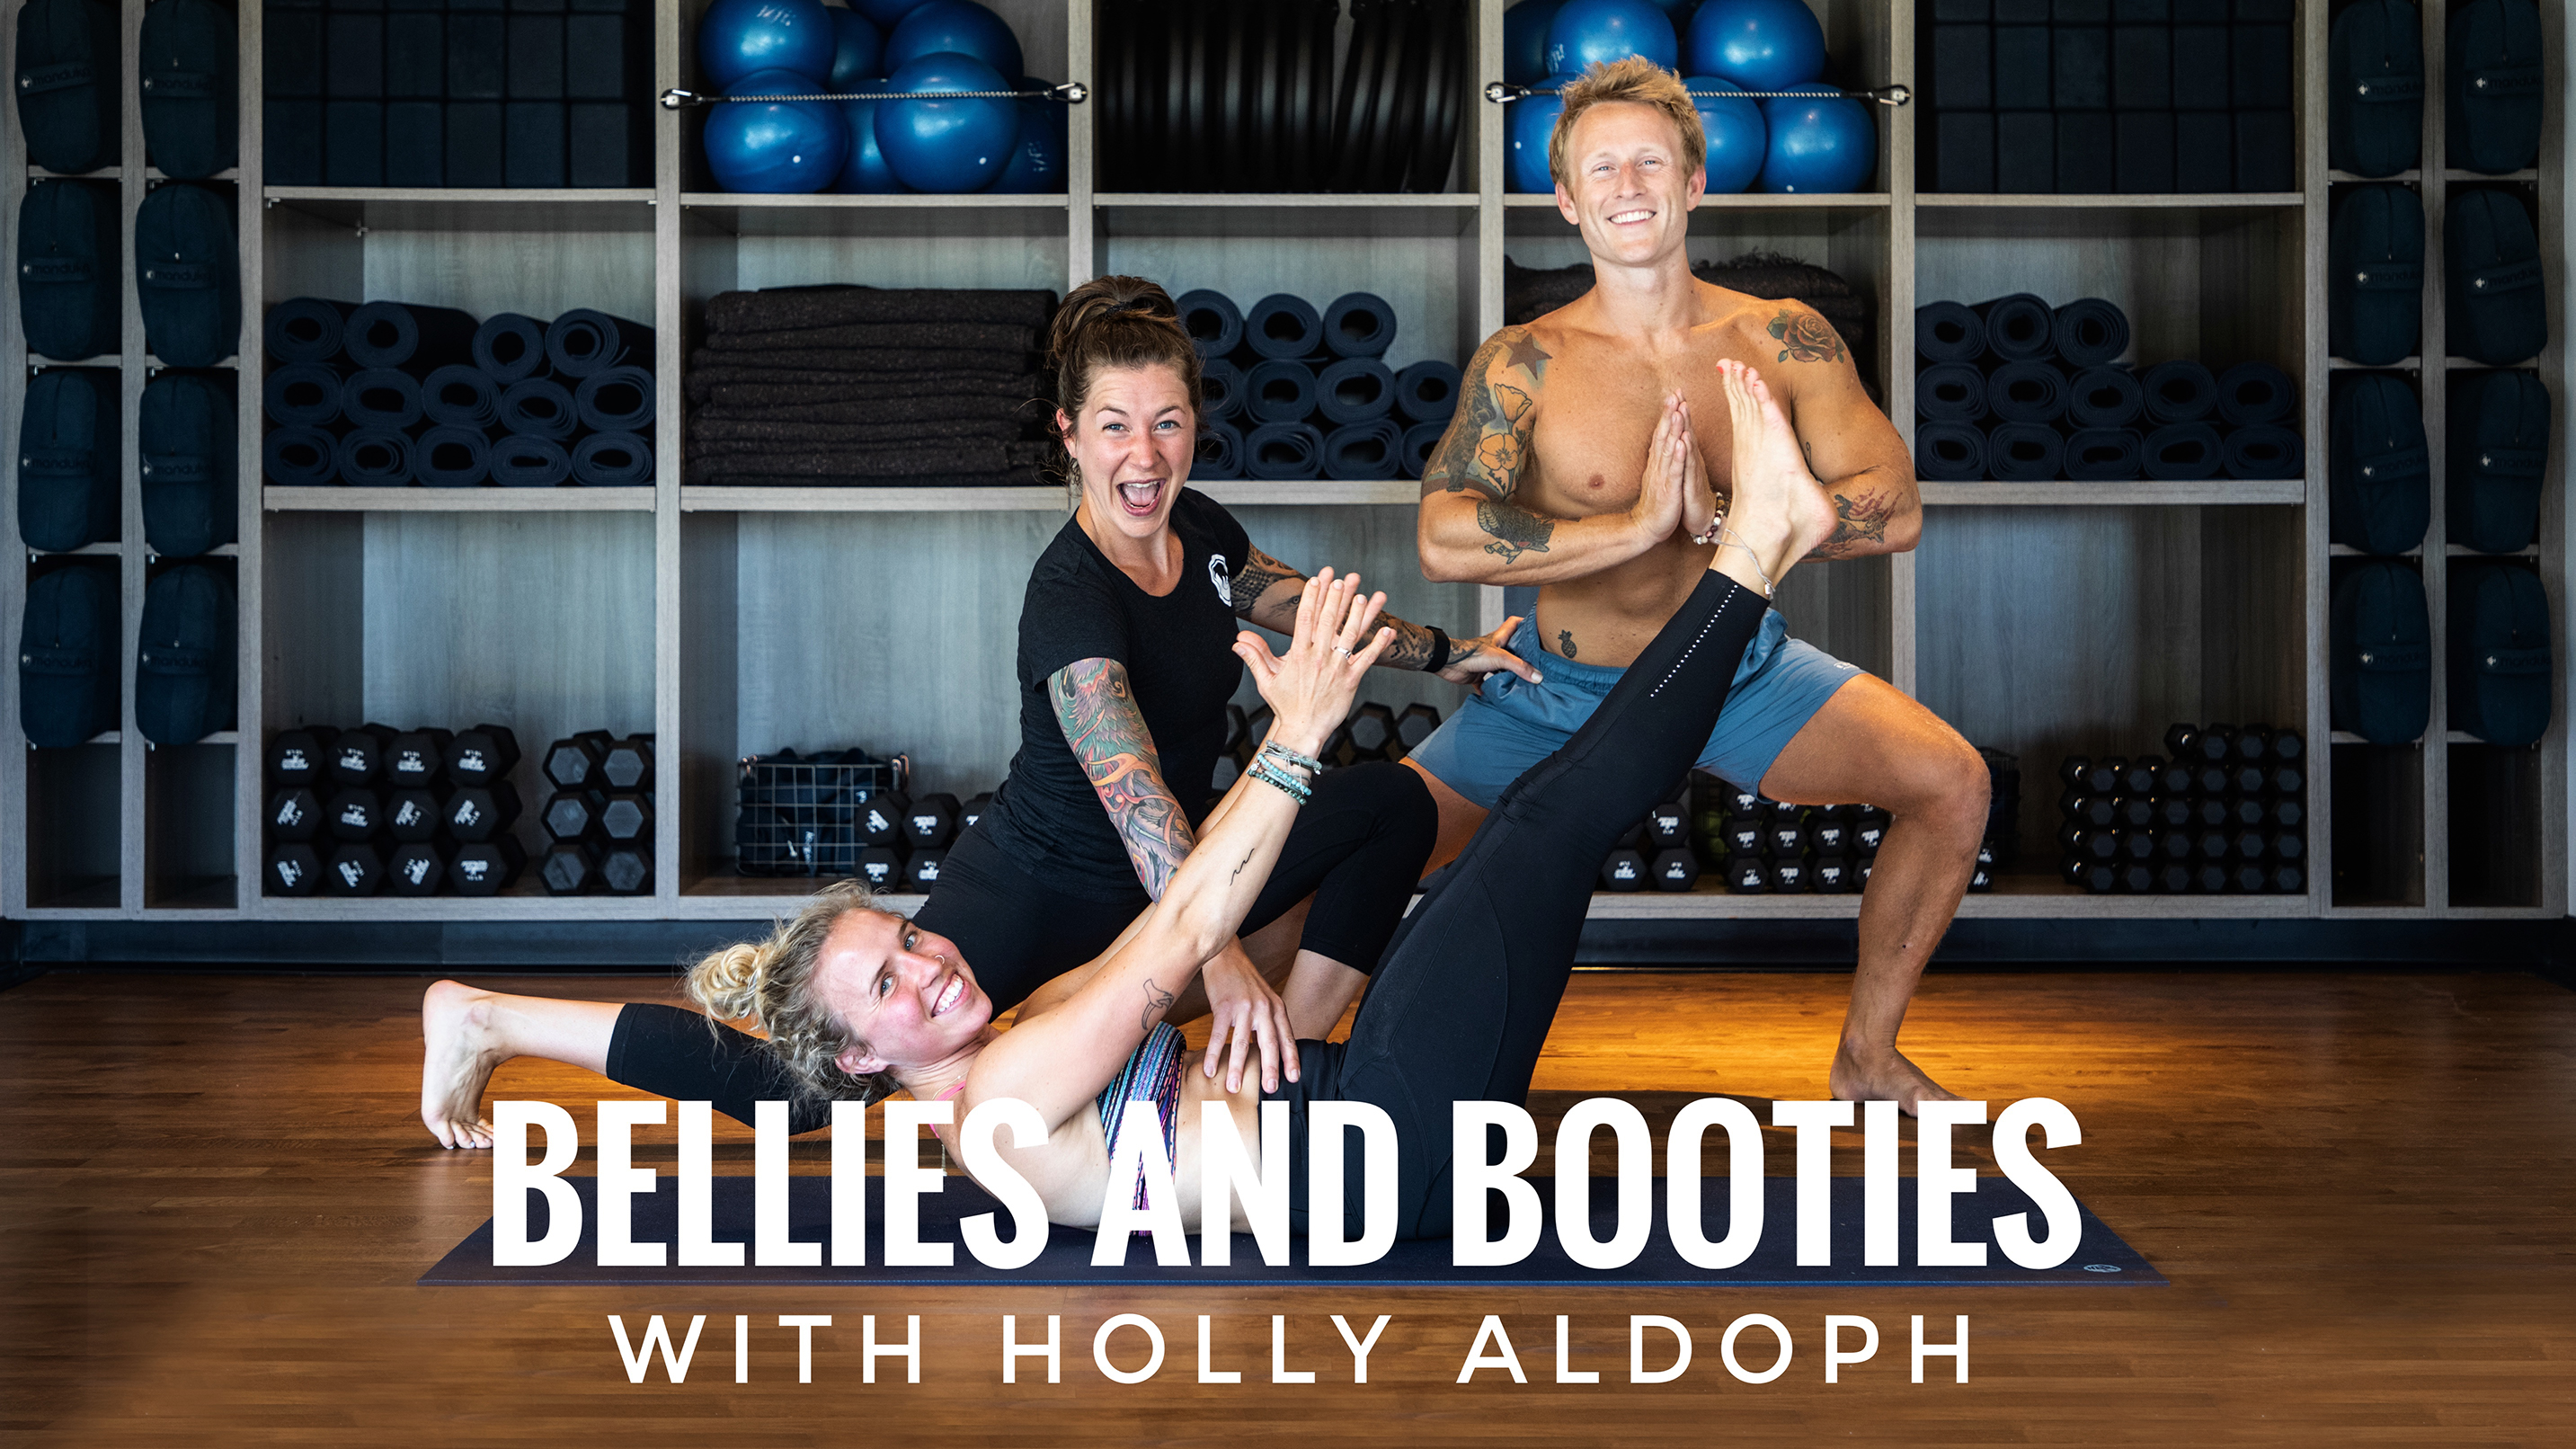 Bellies and Booties with Holly Aldoph